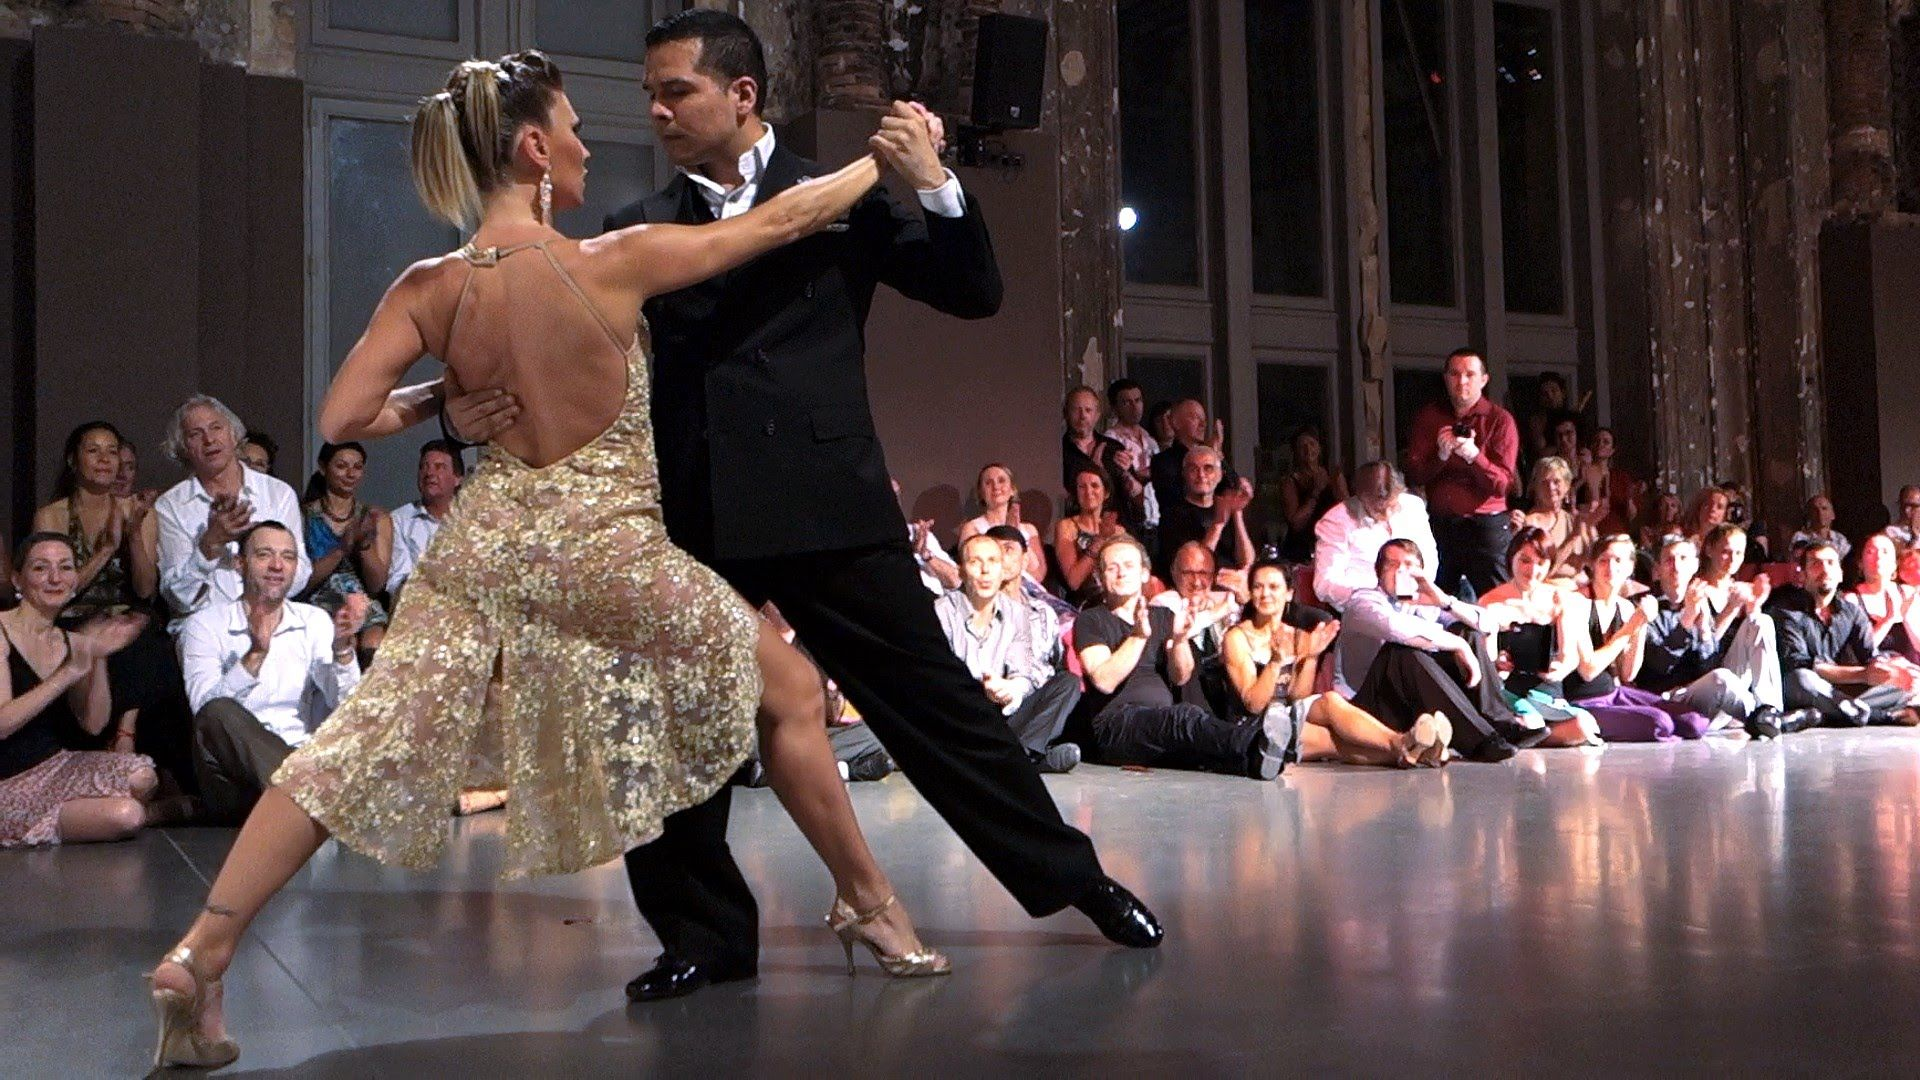 Pin by Catherine Woodcock on dance | Tango, Best songs, Dance